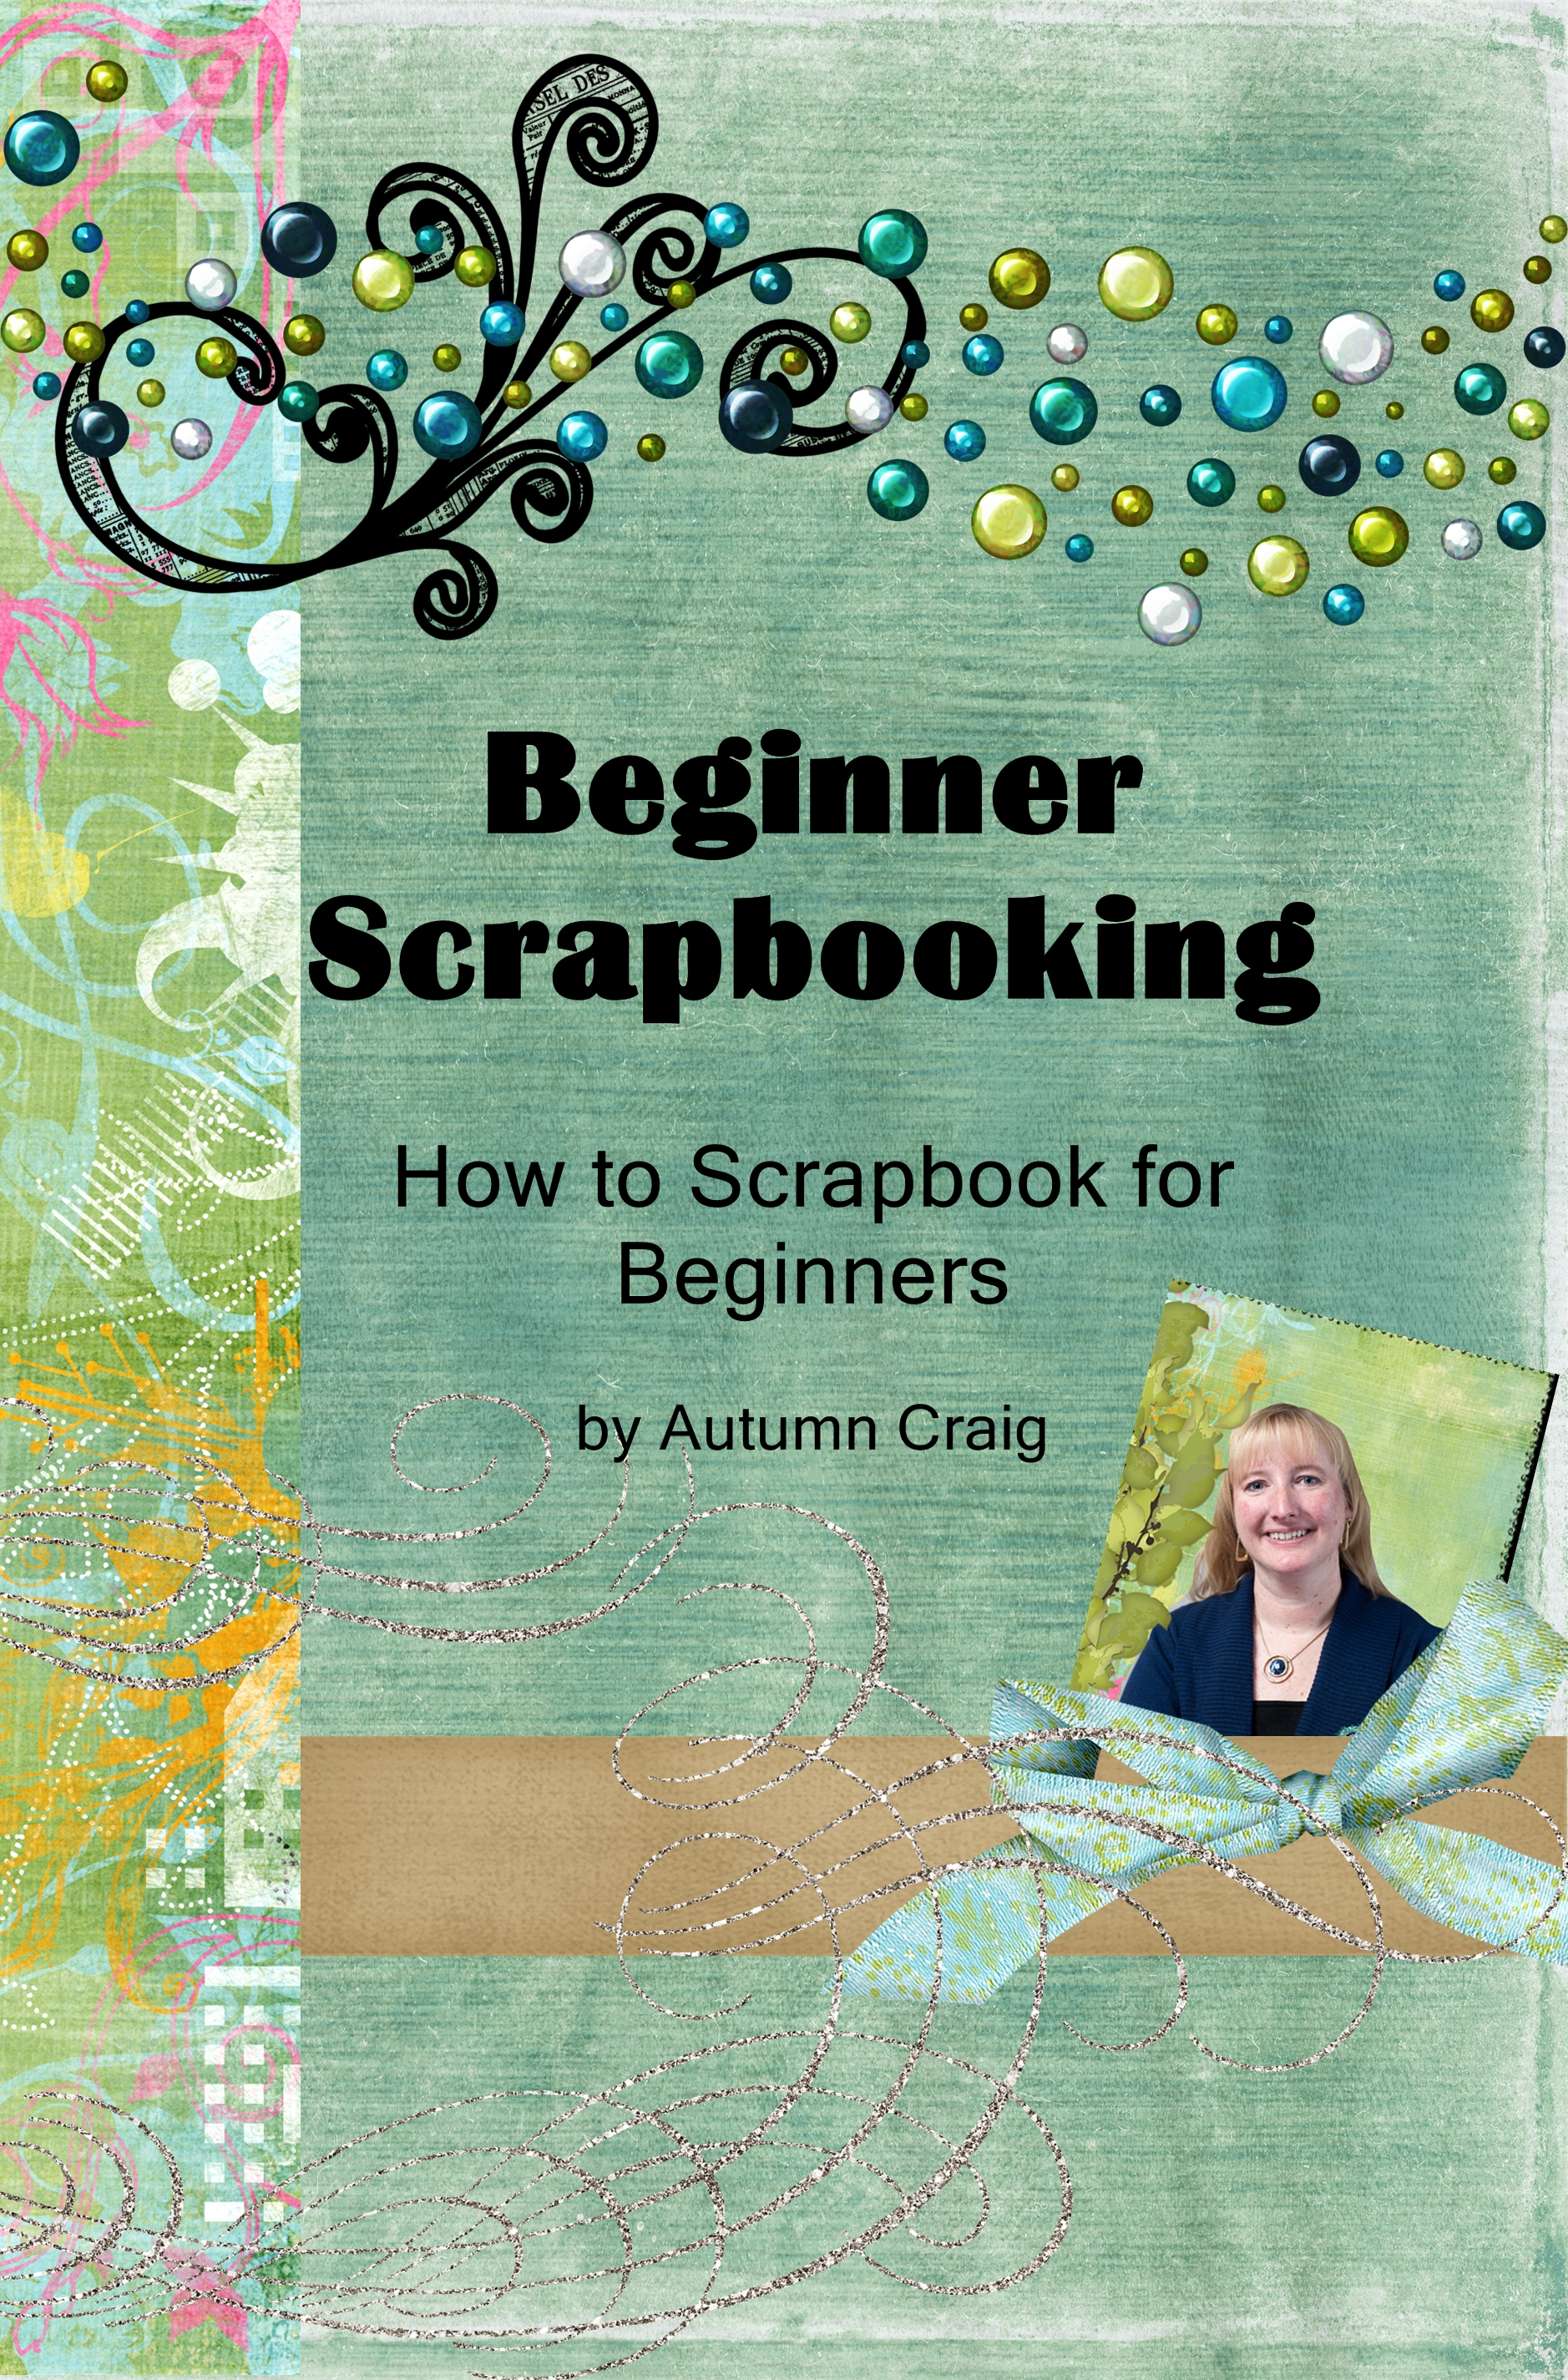 beginner scrapbooking cover - Page 001